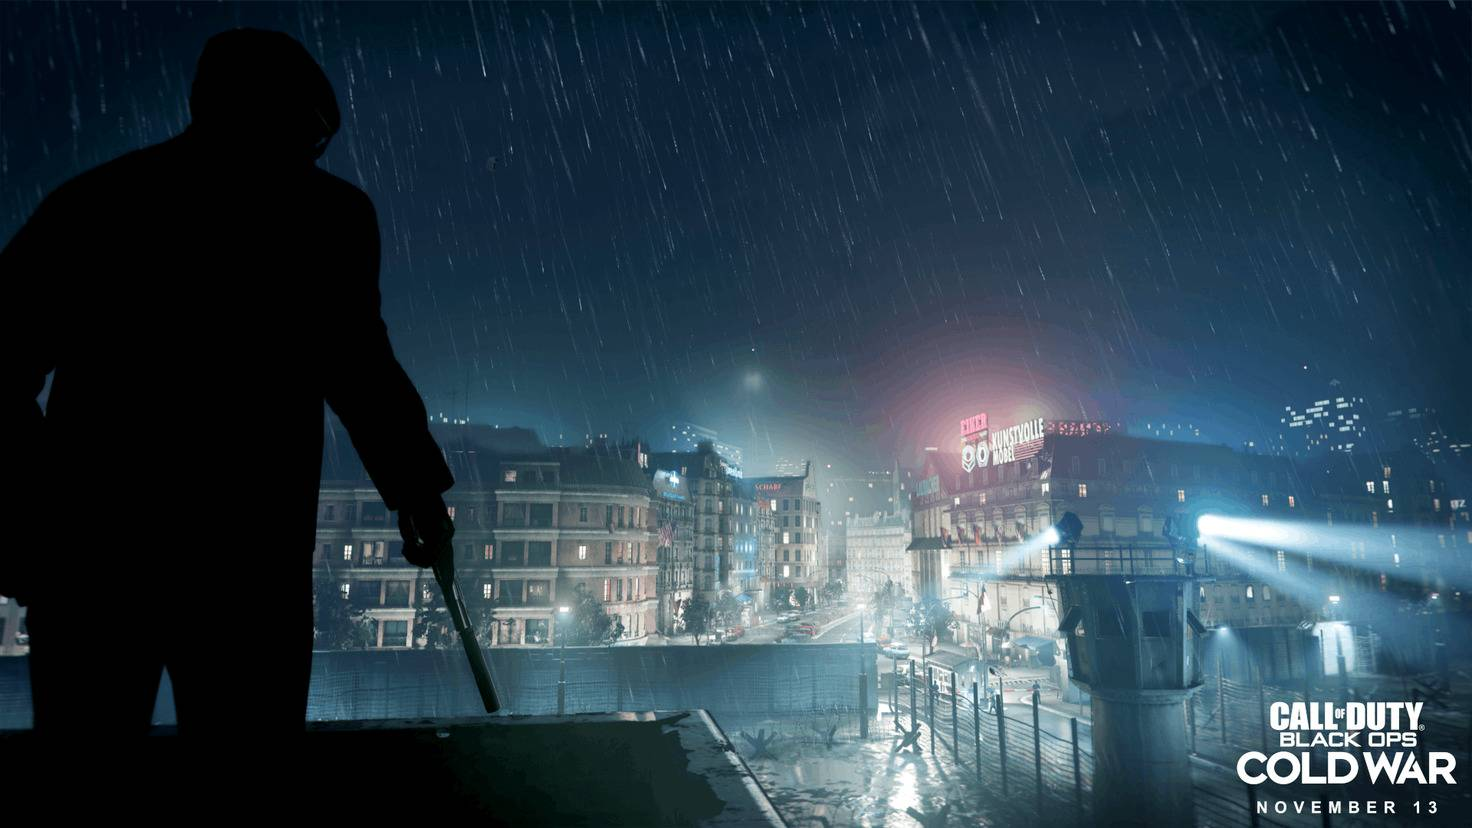 call-of-duty-black-ops-cold-war-stadt-nacht